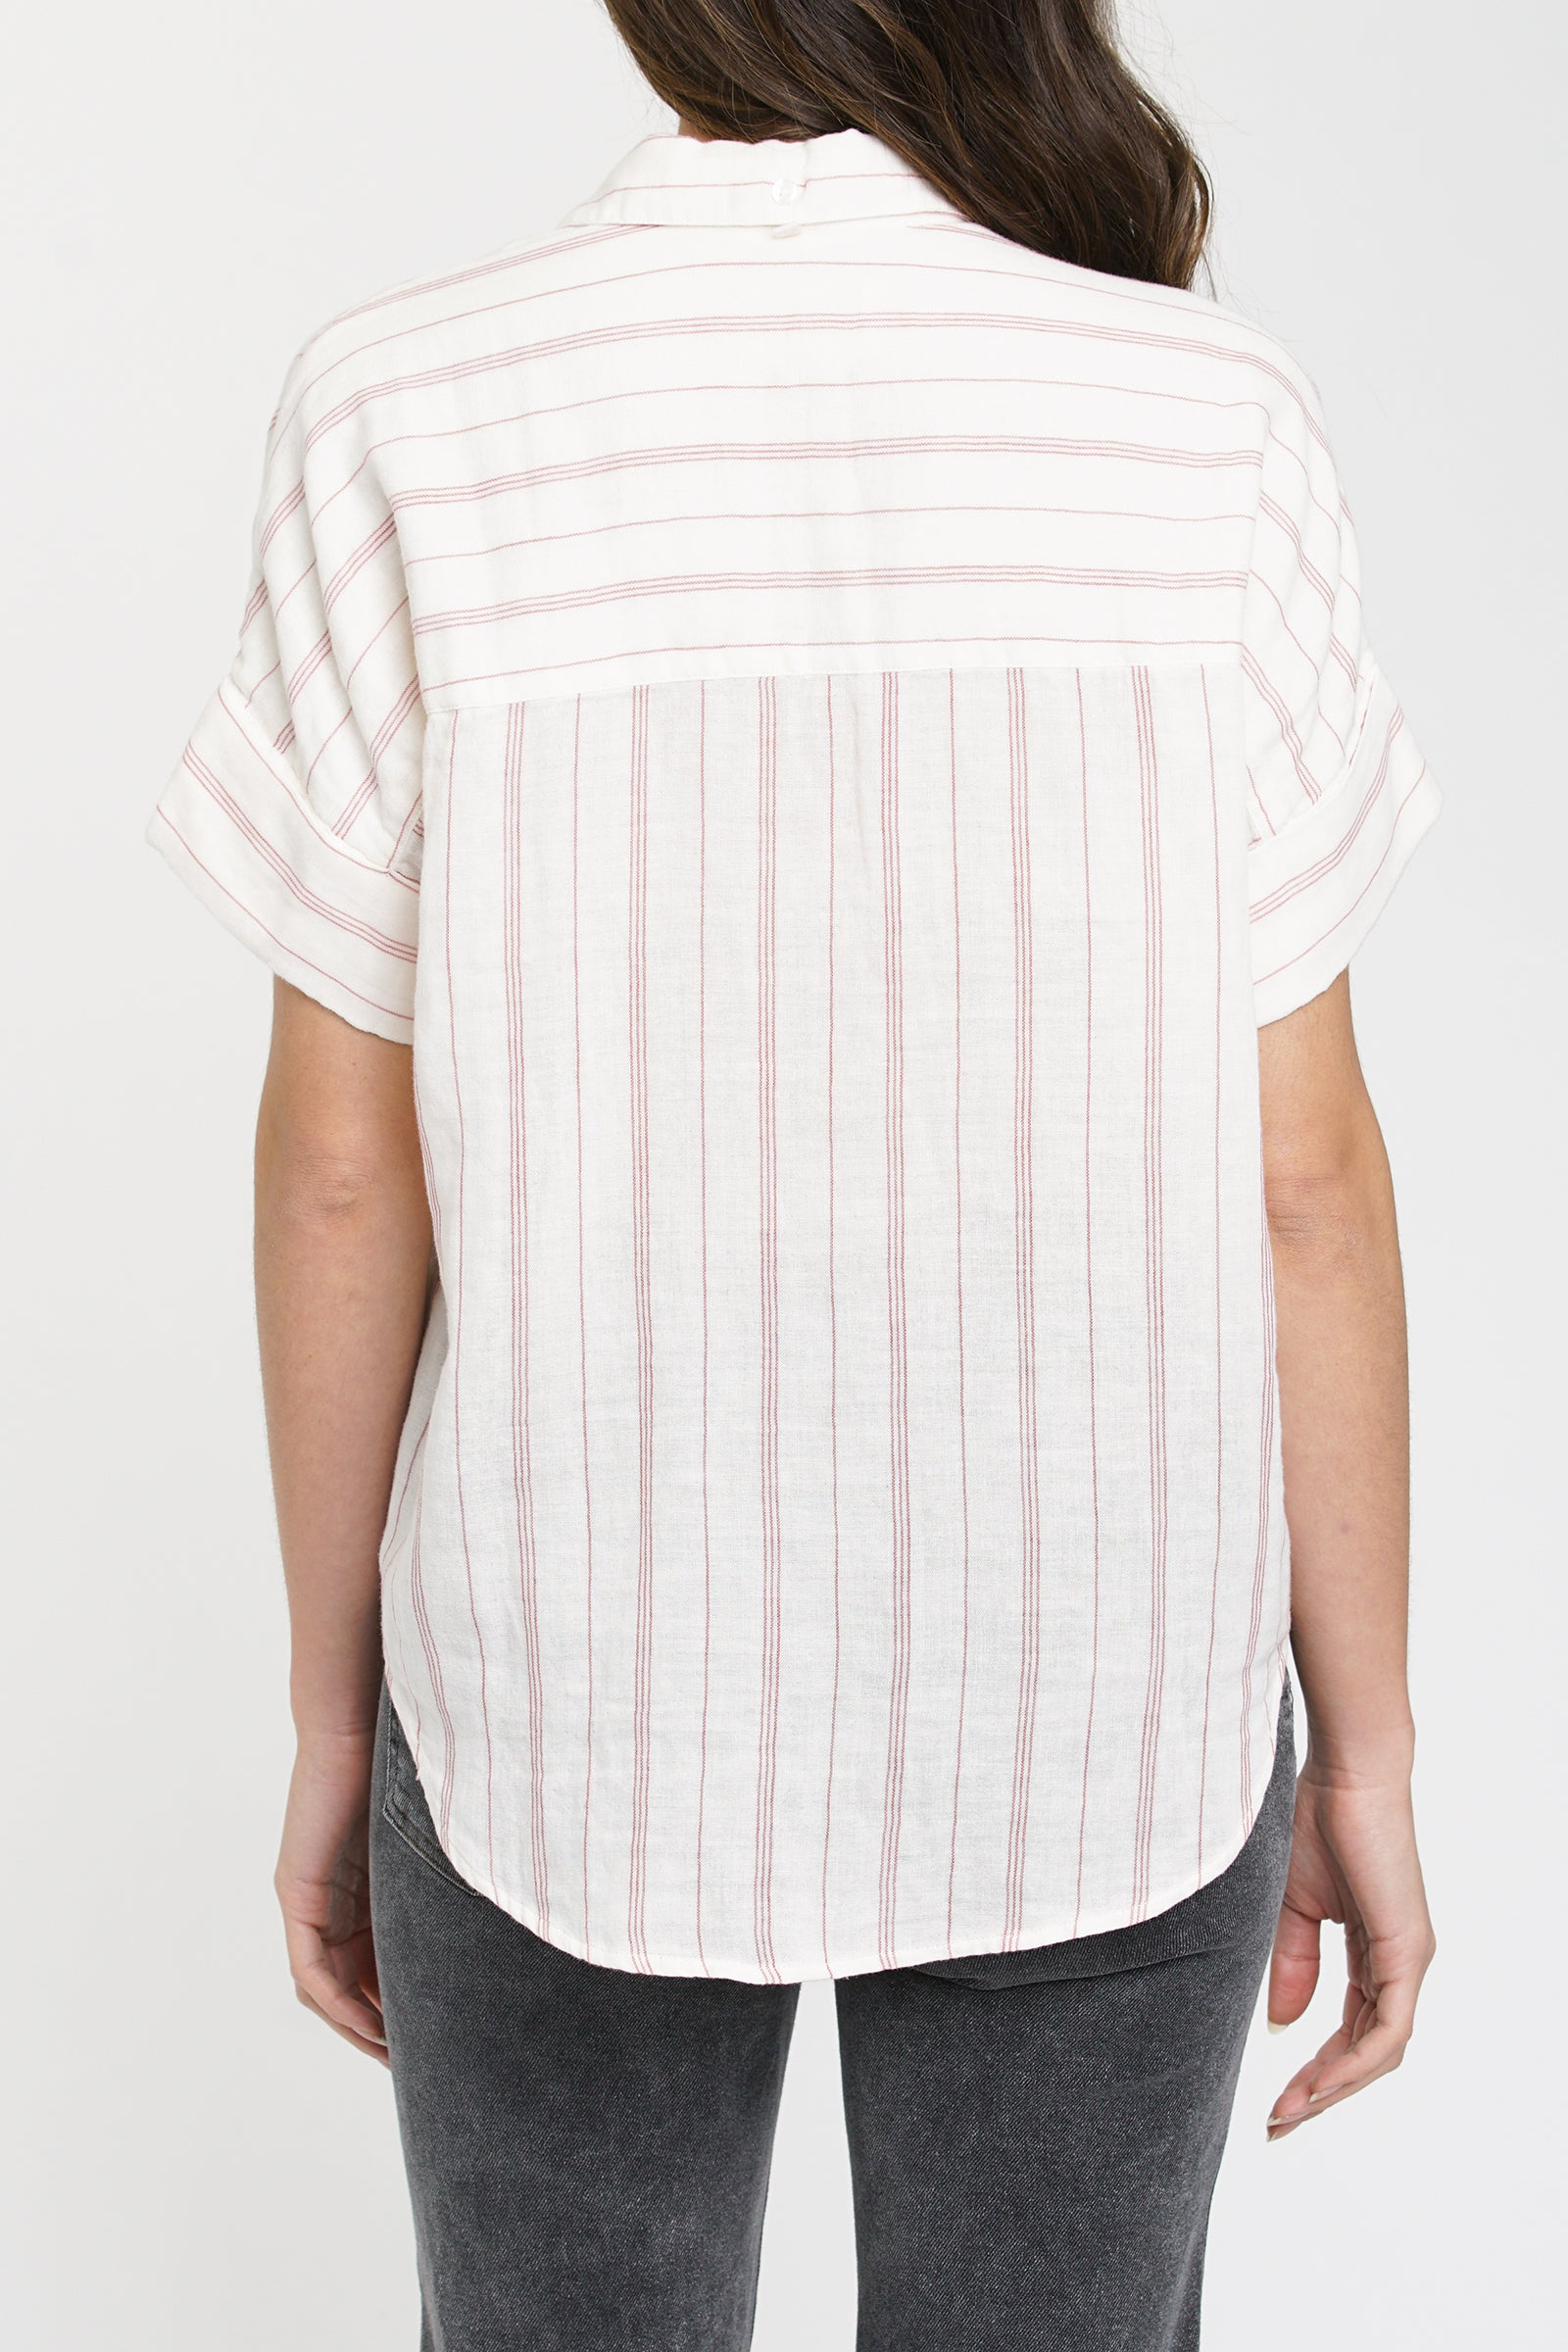 Avery Short Sleeve Button Up Shirt - Manchester Stripe